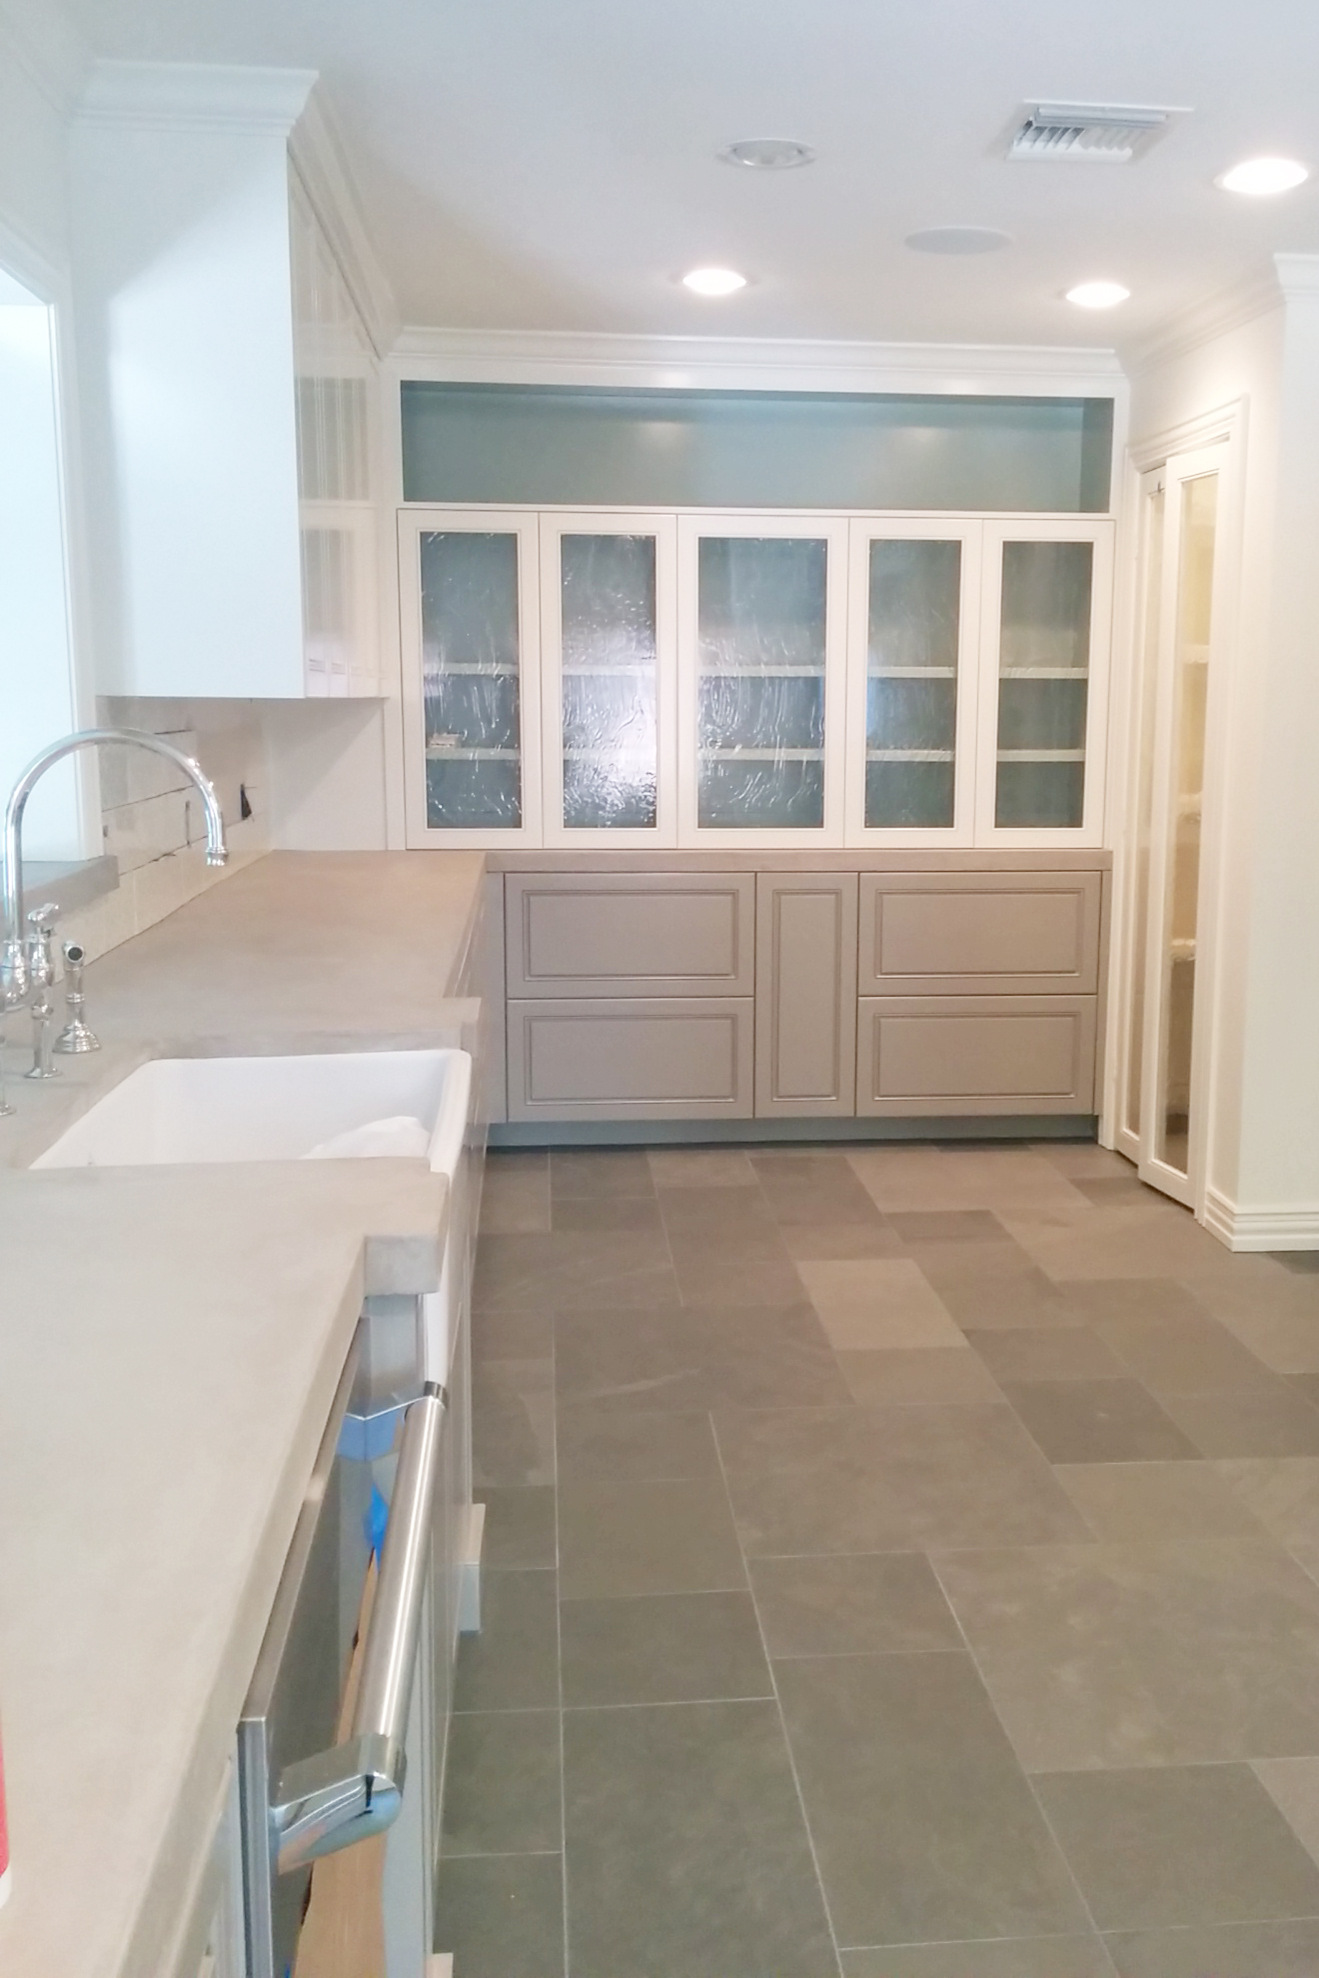 Traditional kitchen remodel in progress by Jamie House Design